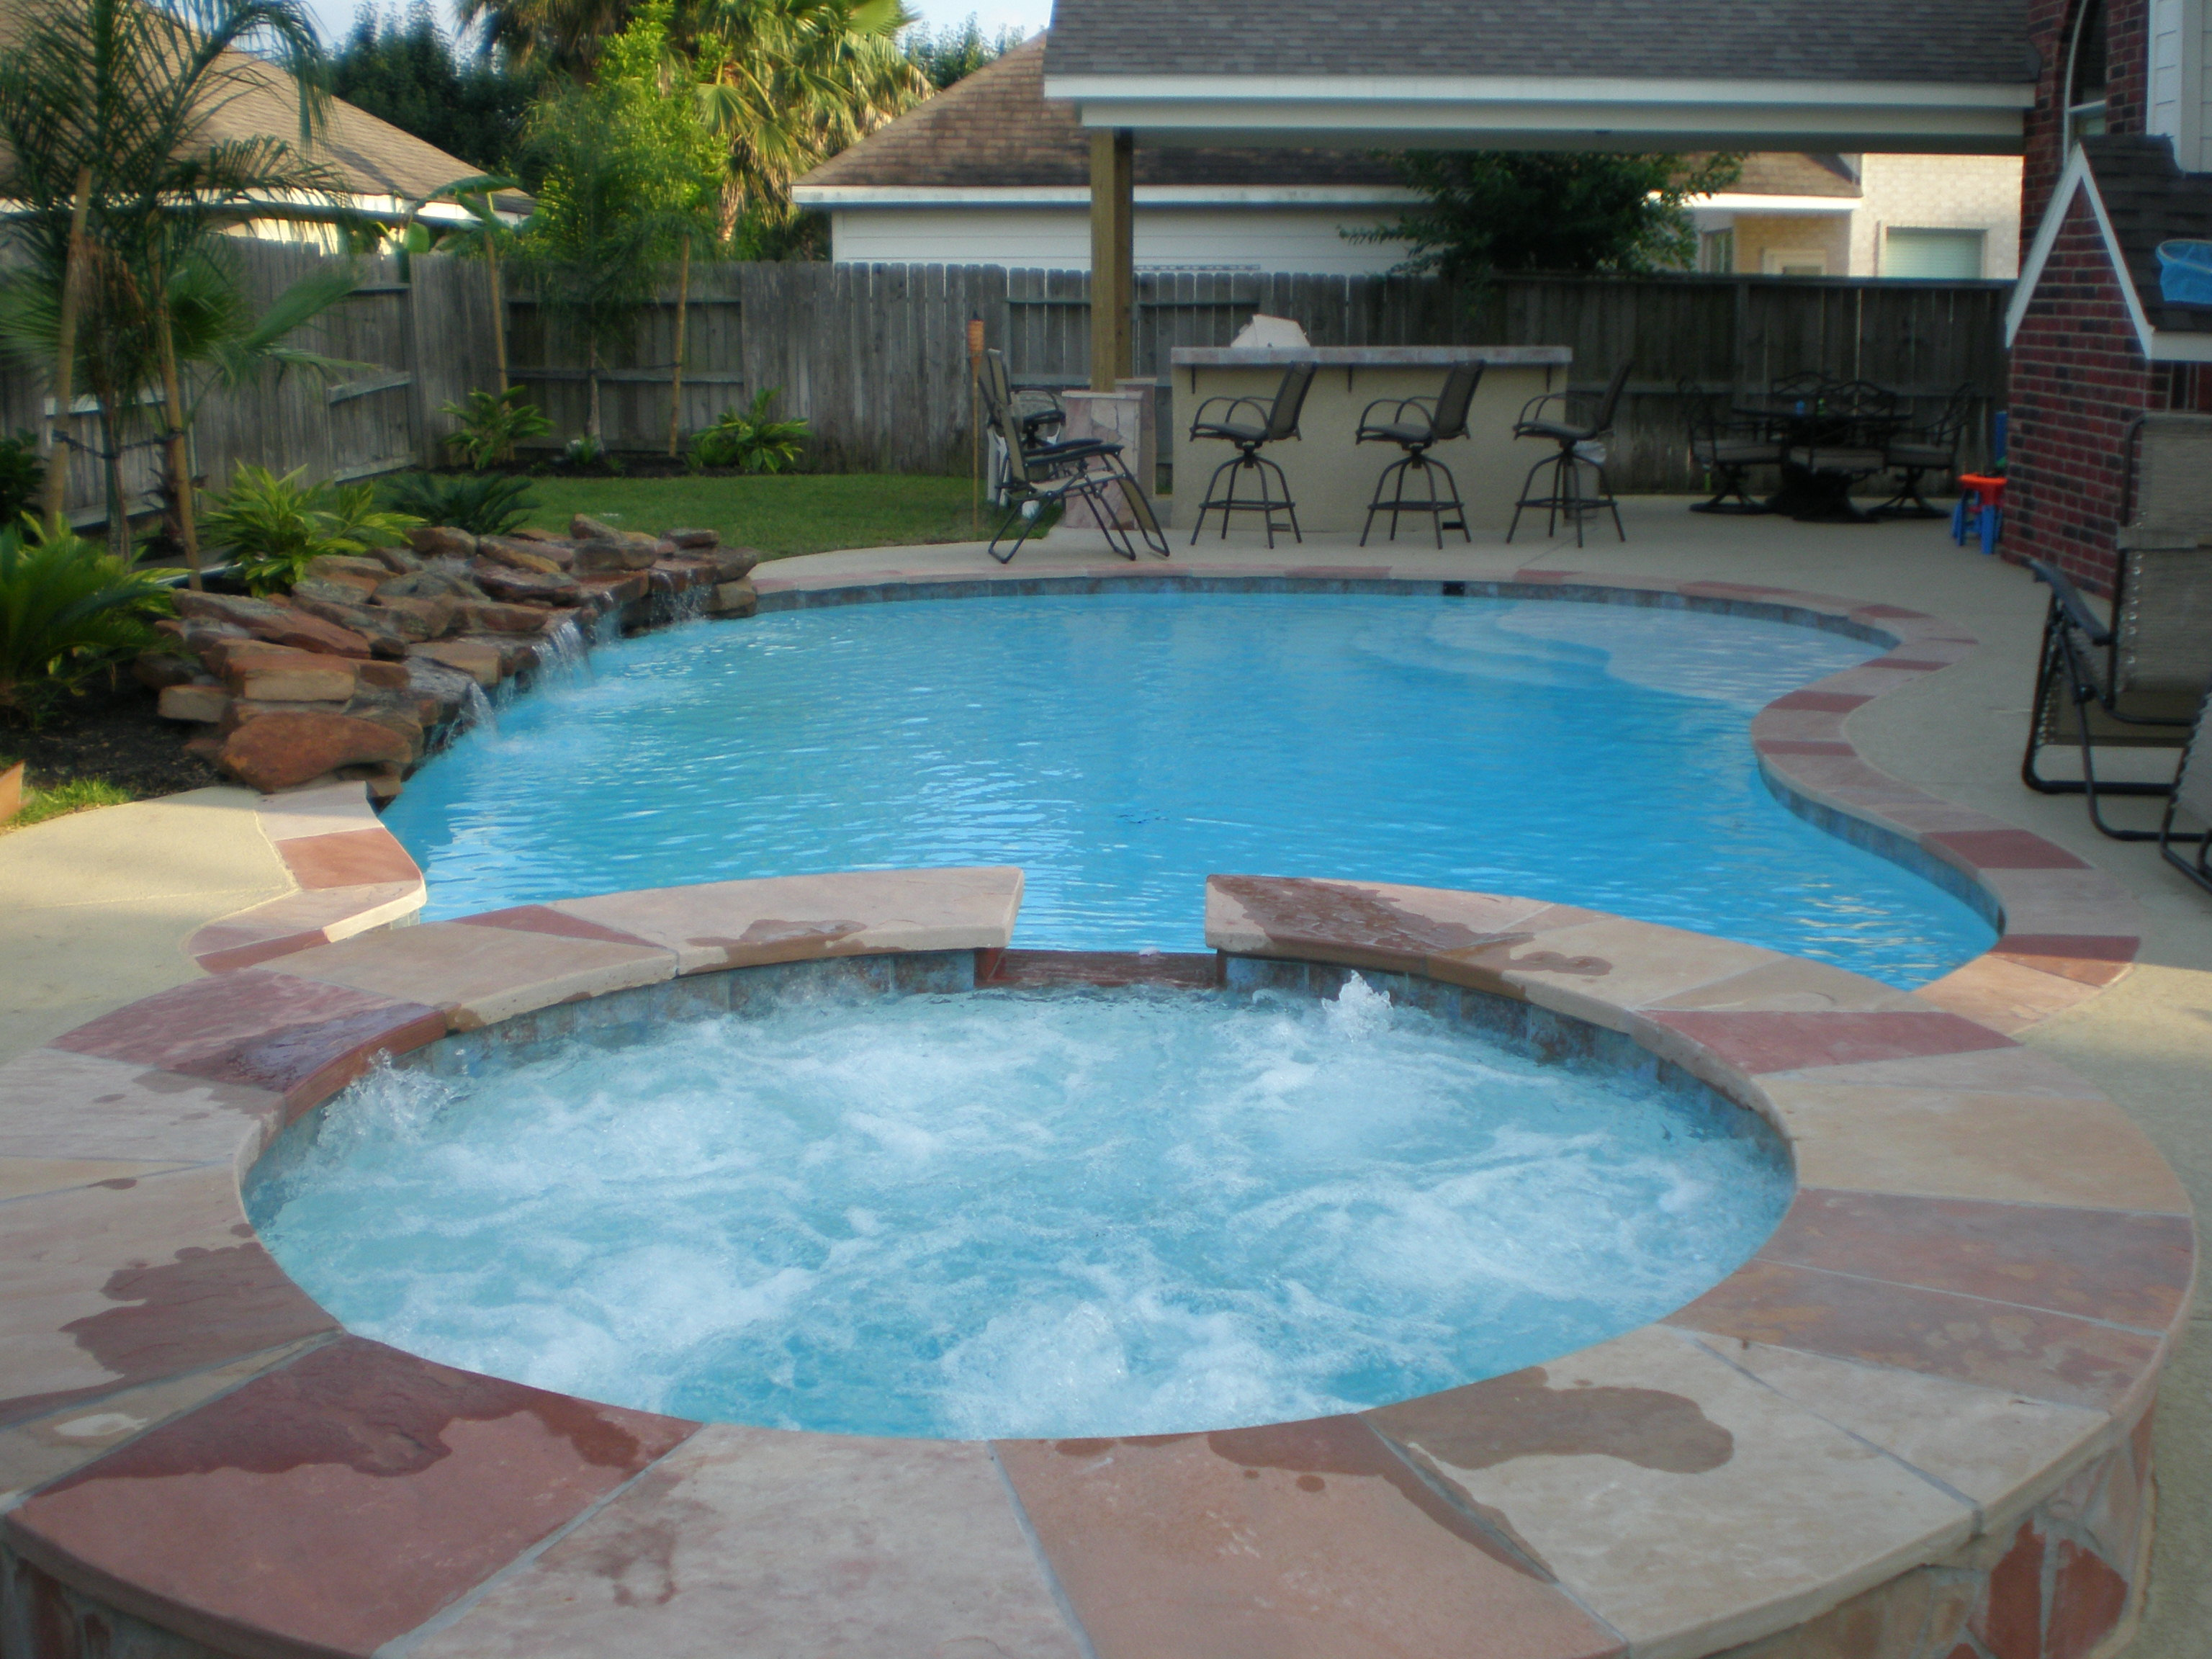 Huge landscape idea pools and landscaping ideas drought for Pool design with hot tub